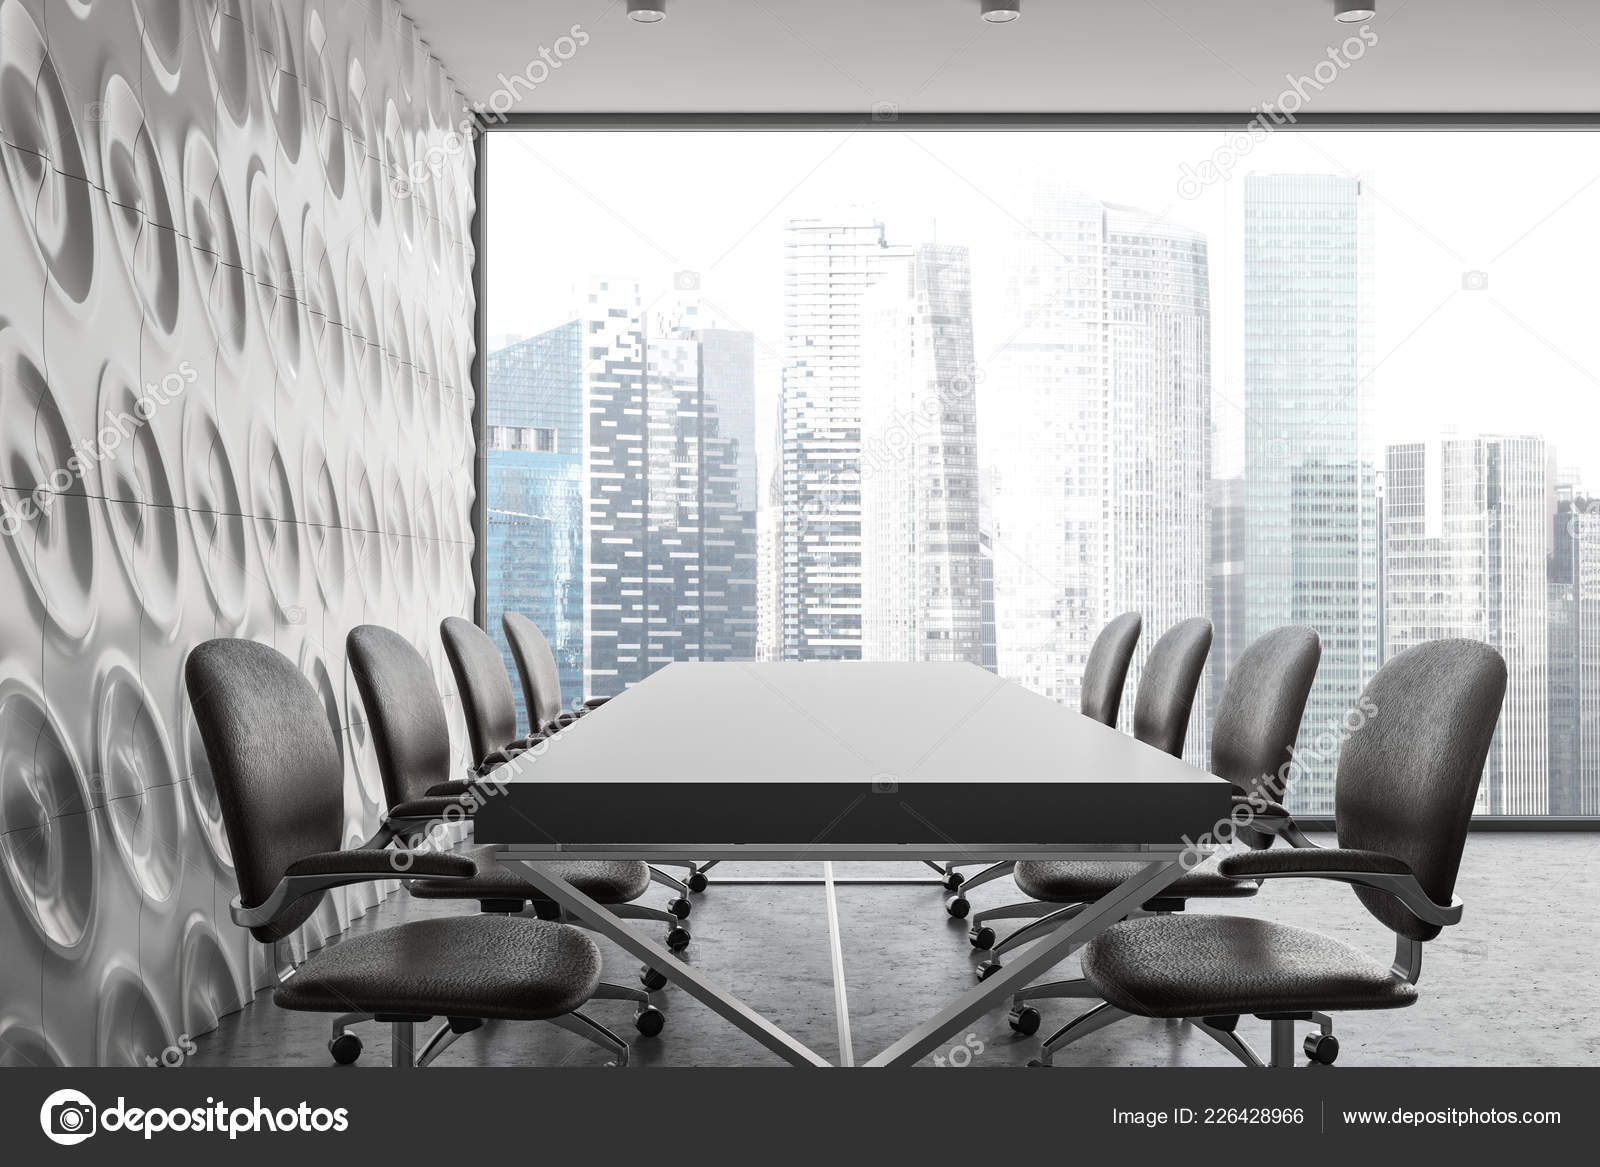 Office Meeting Room Interior White Geometric Wall Pattern Concrete